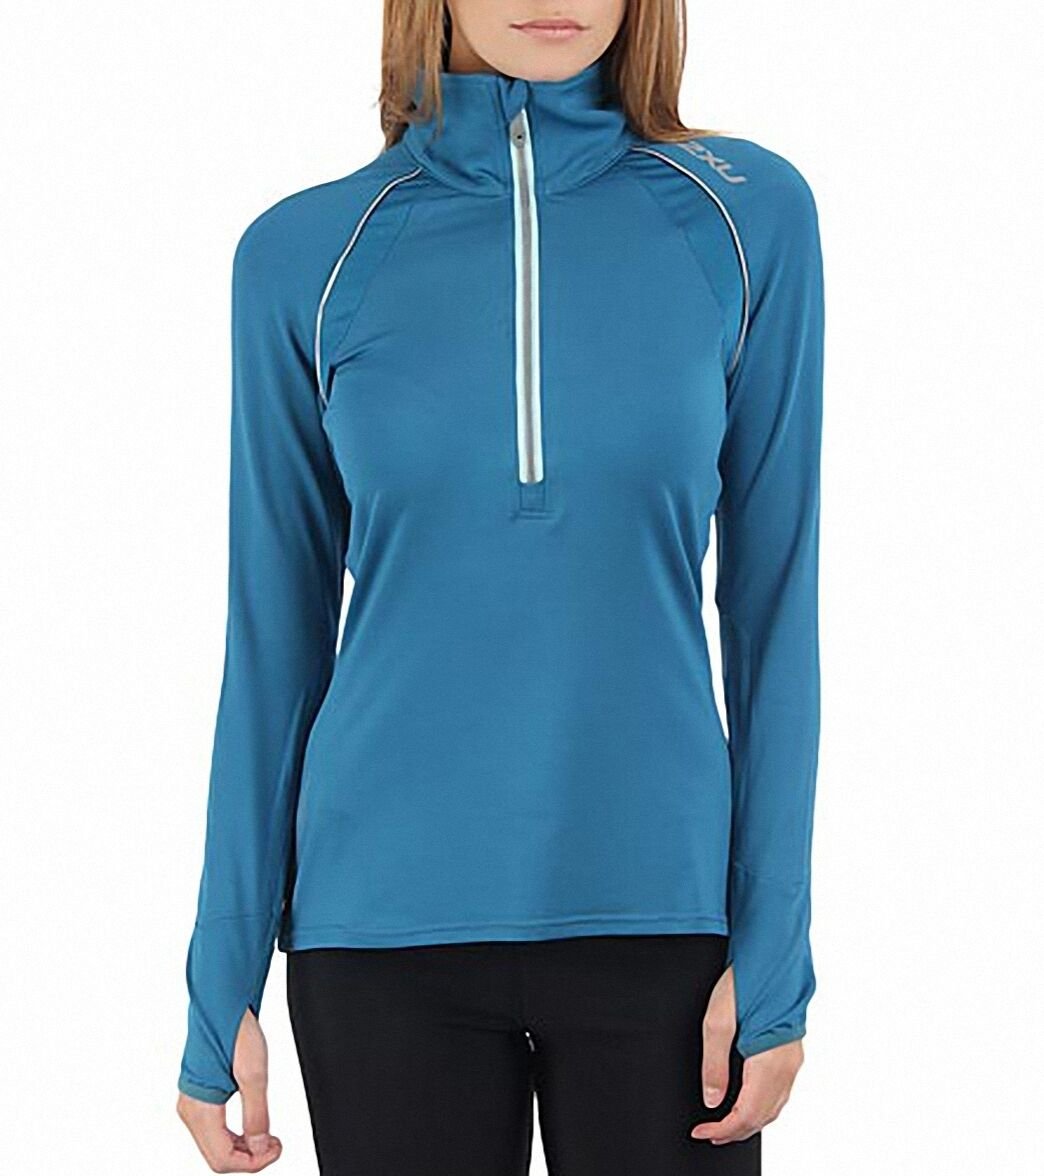 2XU Micro Thermal Top Women Running  WR2172a Rain Frost S  up to 50% off